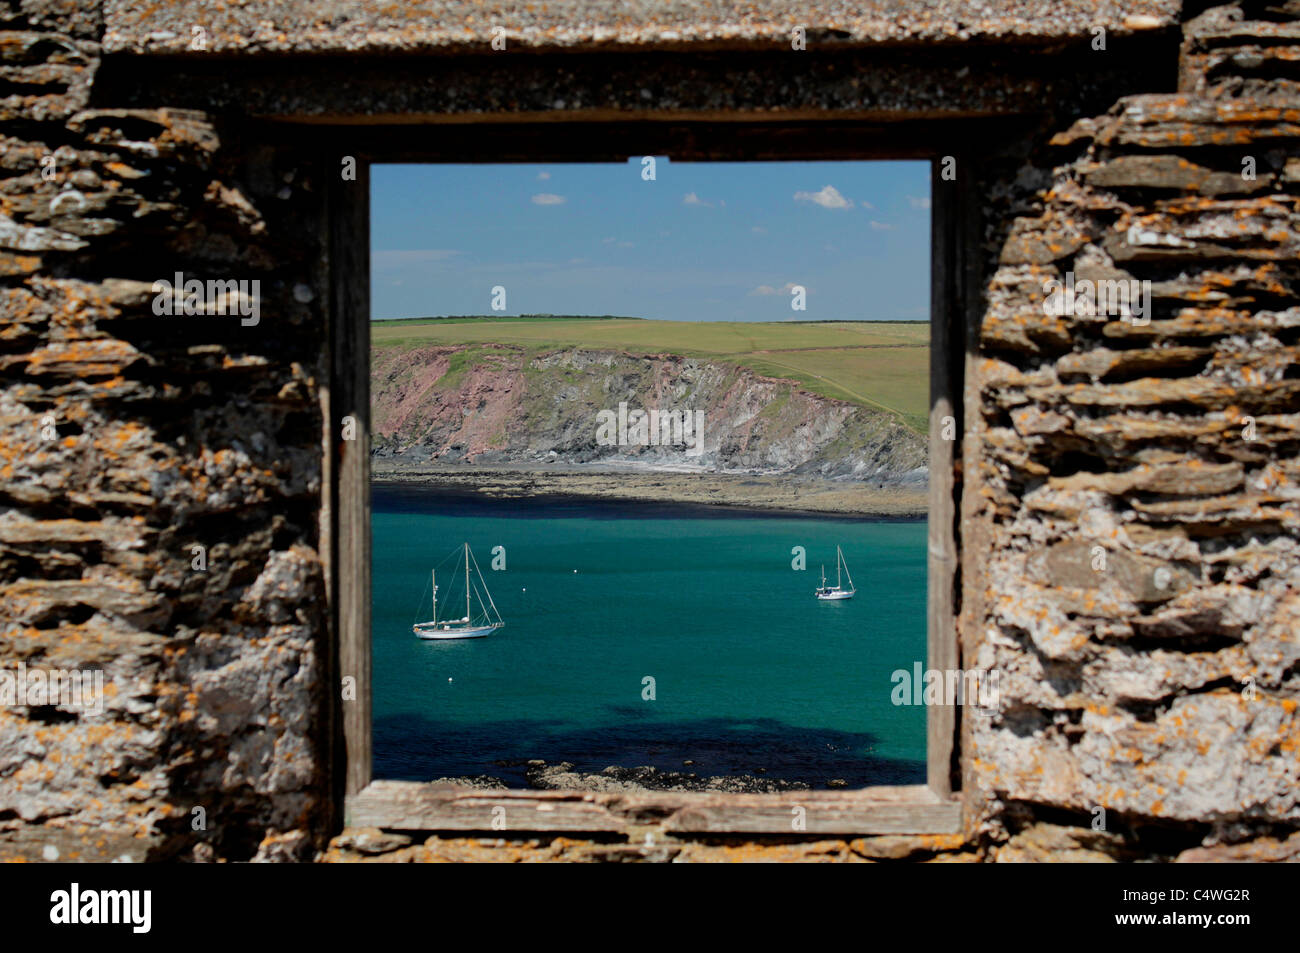 View from ruined huer's hut on Burgh Island, Devon, UK - Stock Image